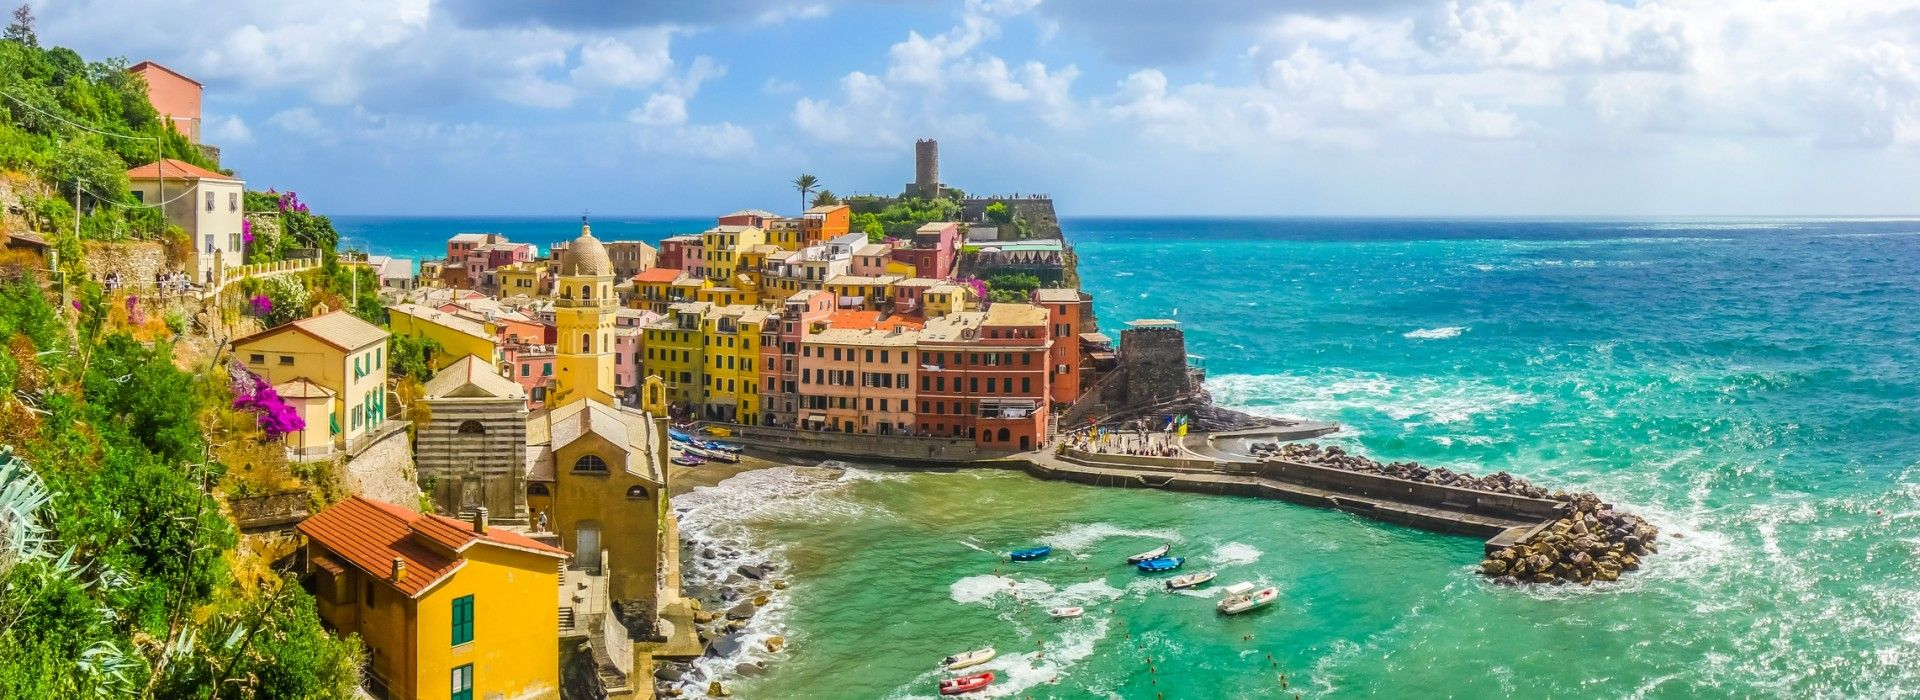 Food tours in Italy